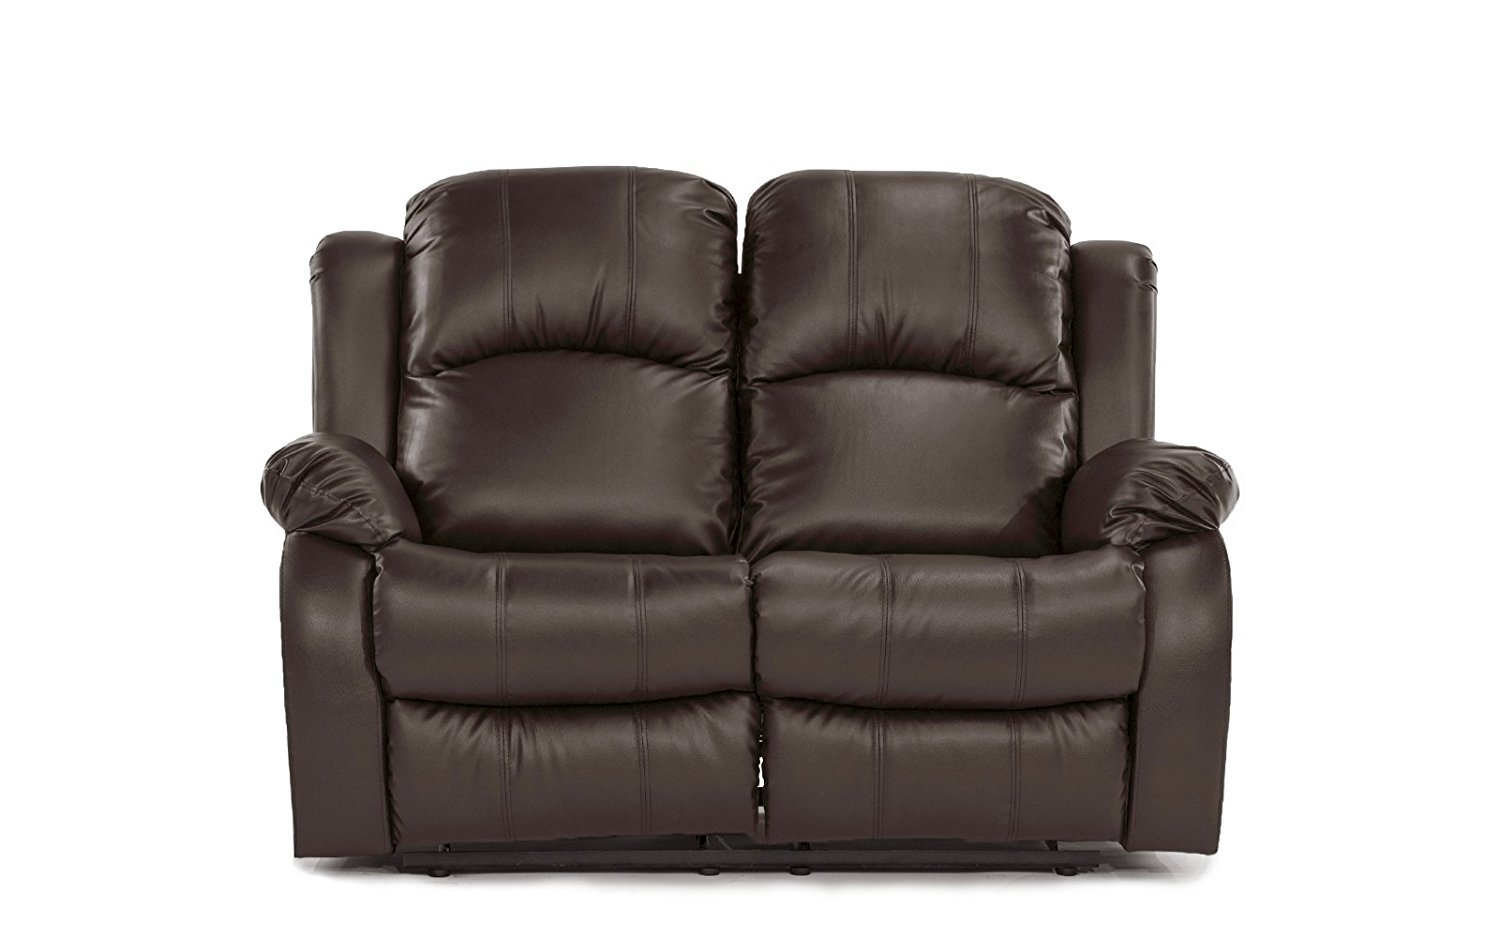 Clic And Traditional Bonded Leather Recliner Chair Love Seat Sofa Size 1 Seater 2 3 Set